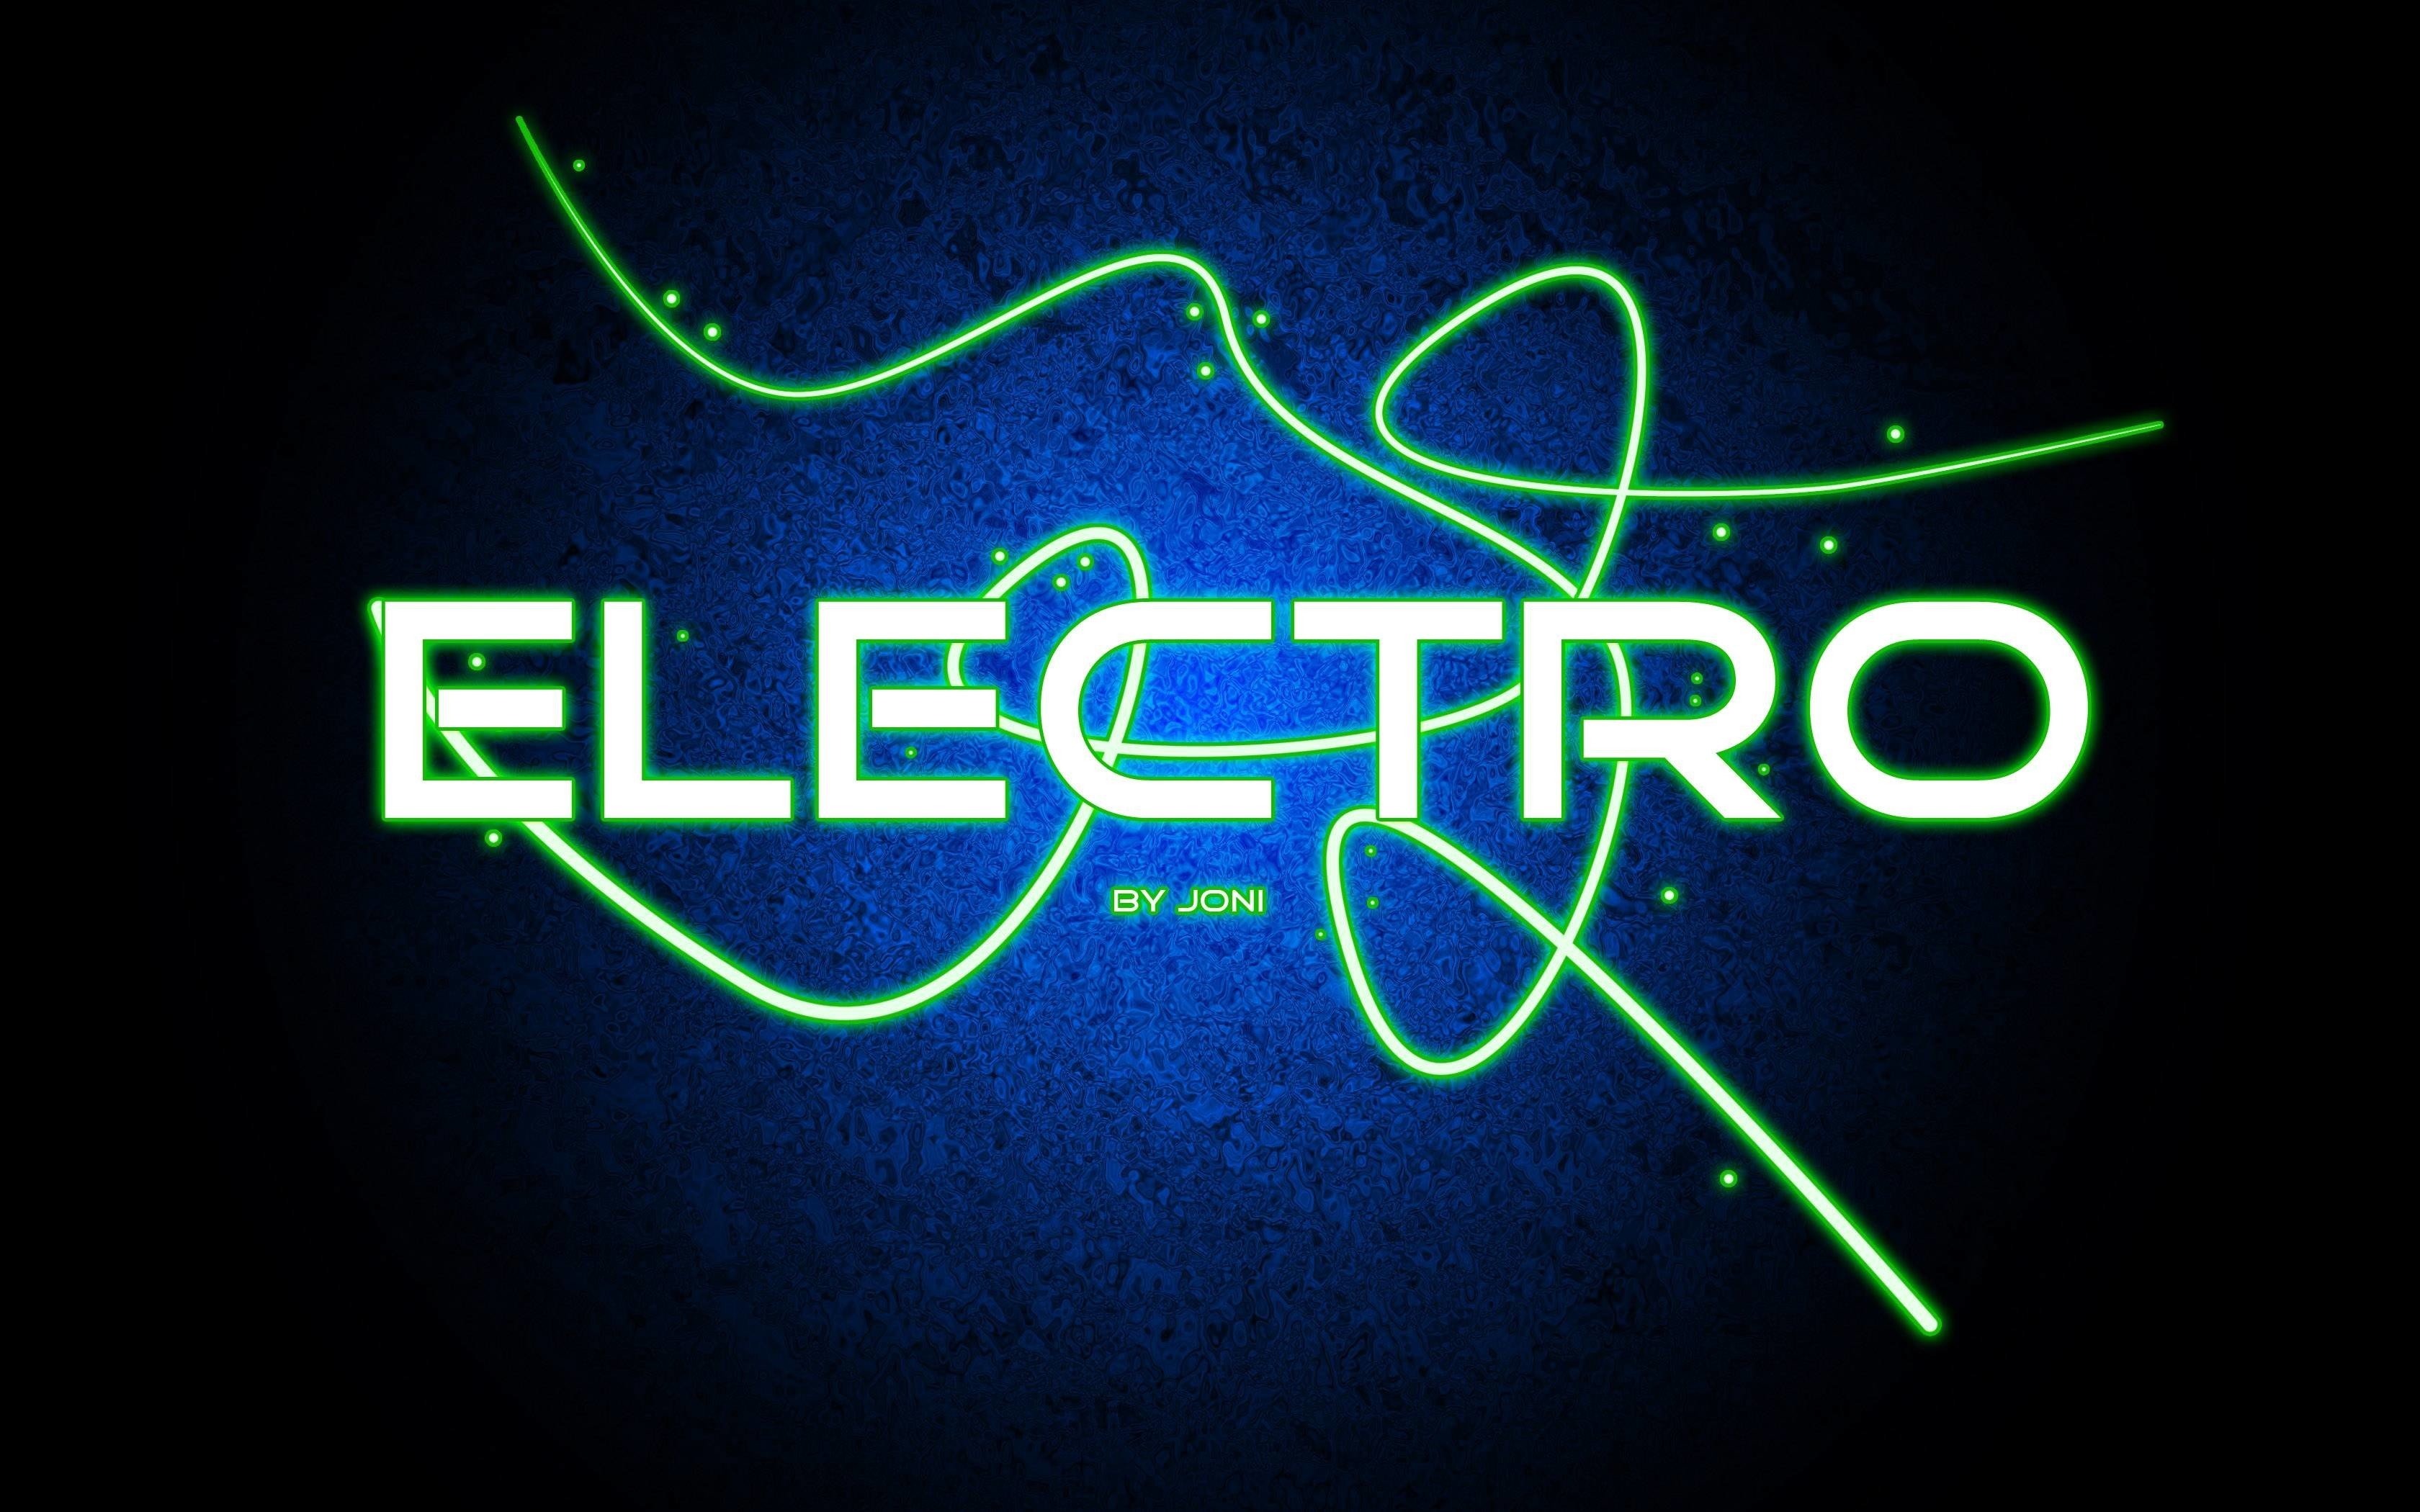 Electro house music wallpaper 64 images for House music images